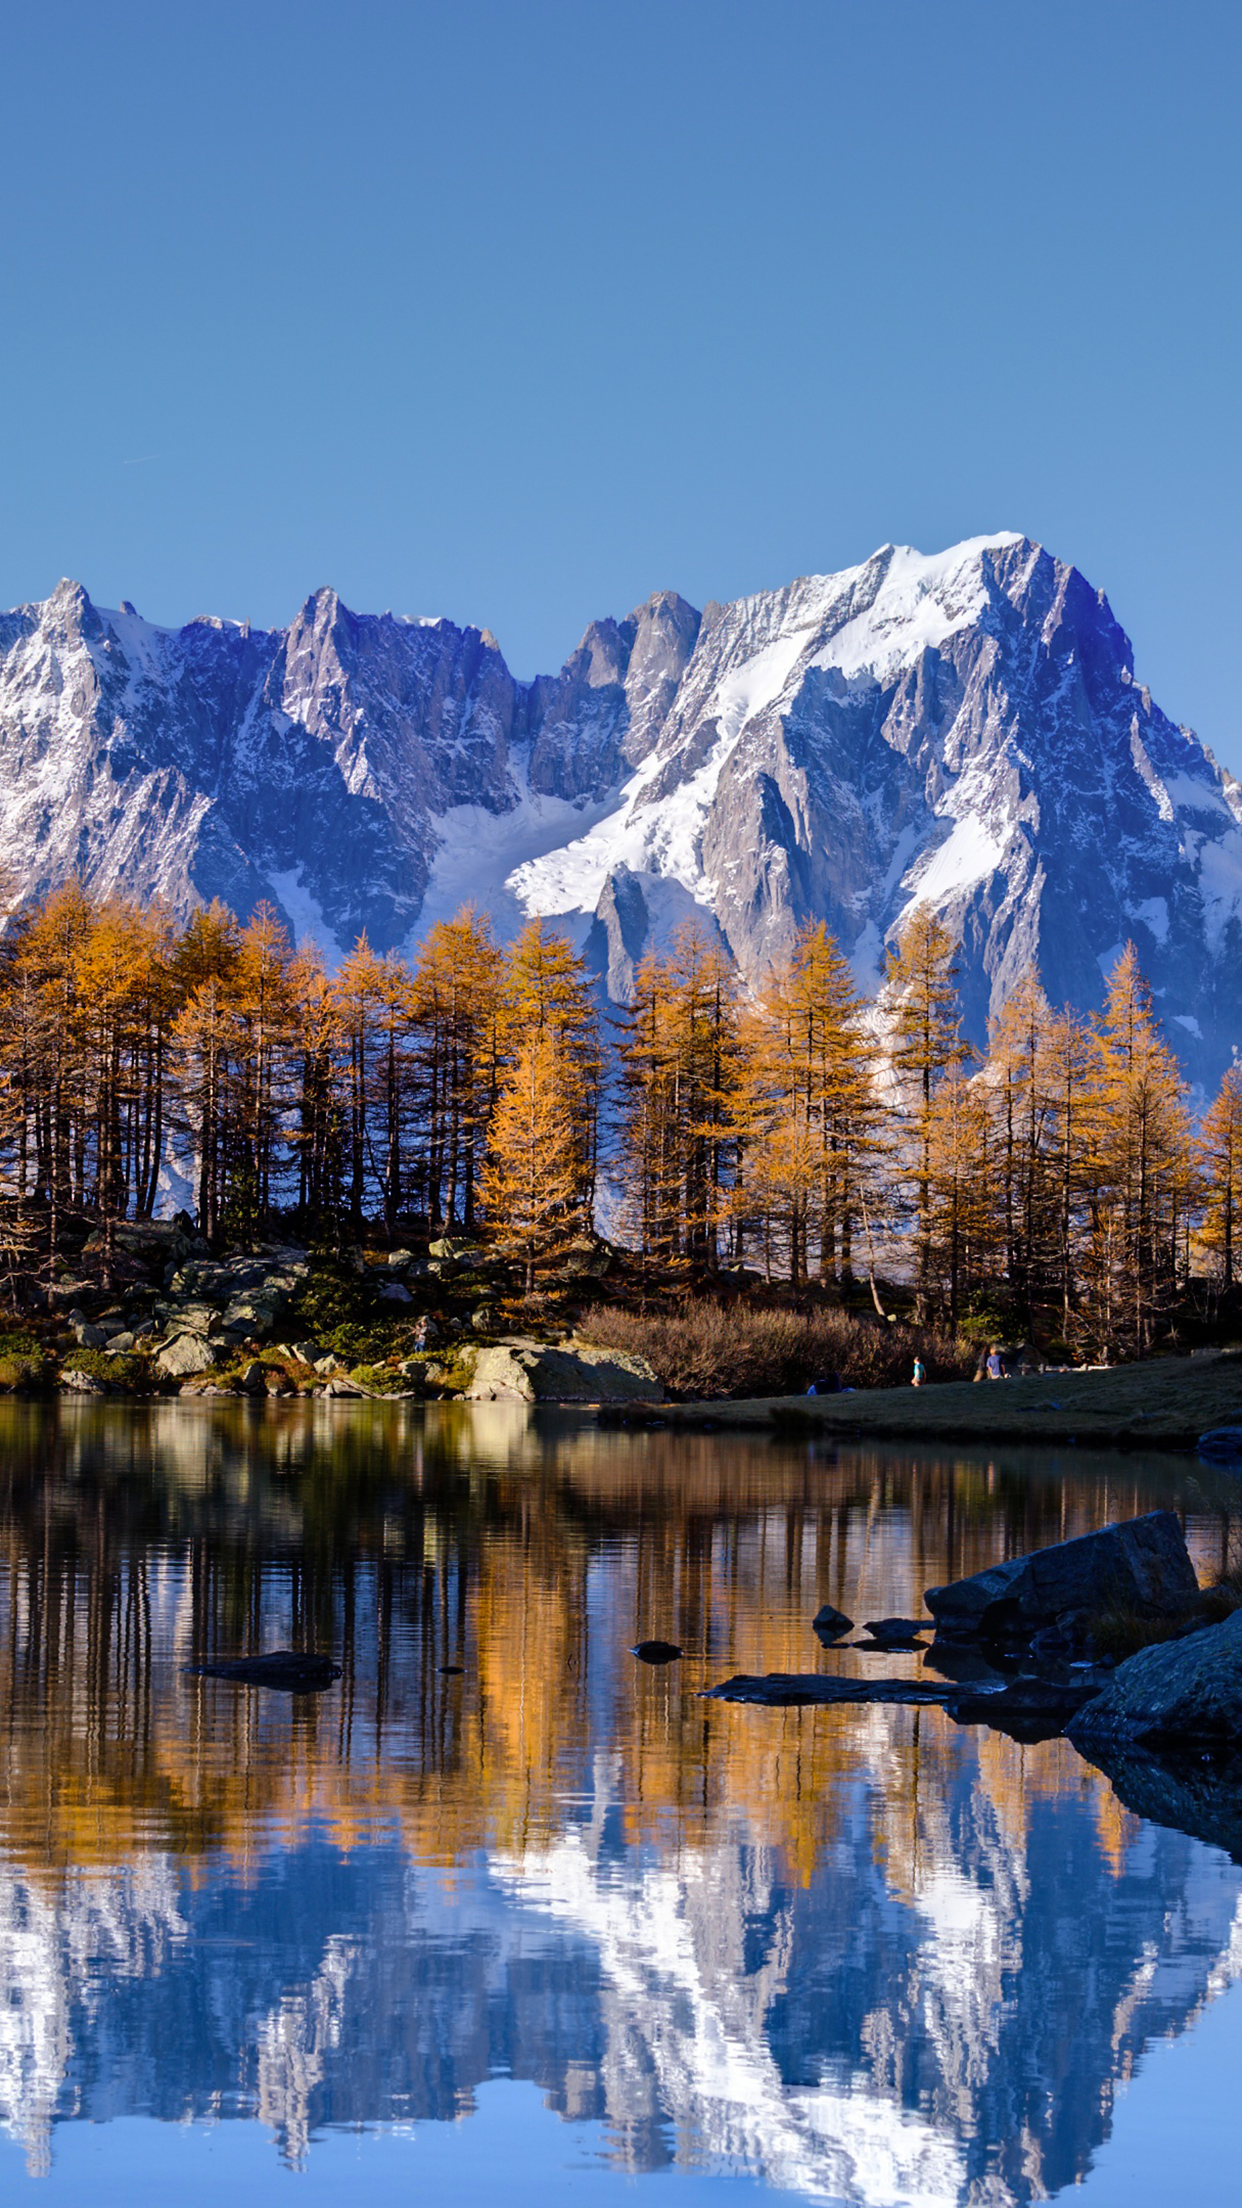 3d Parallax Wallpaper Pro Mont Blanc Autumn Wallpaper For Iphone X 8 7 6 Free